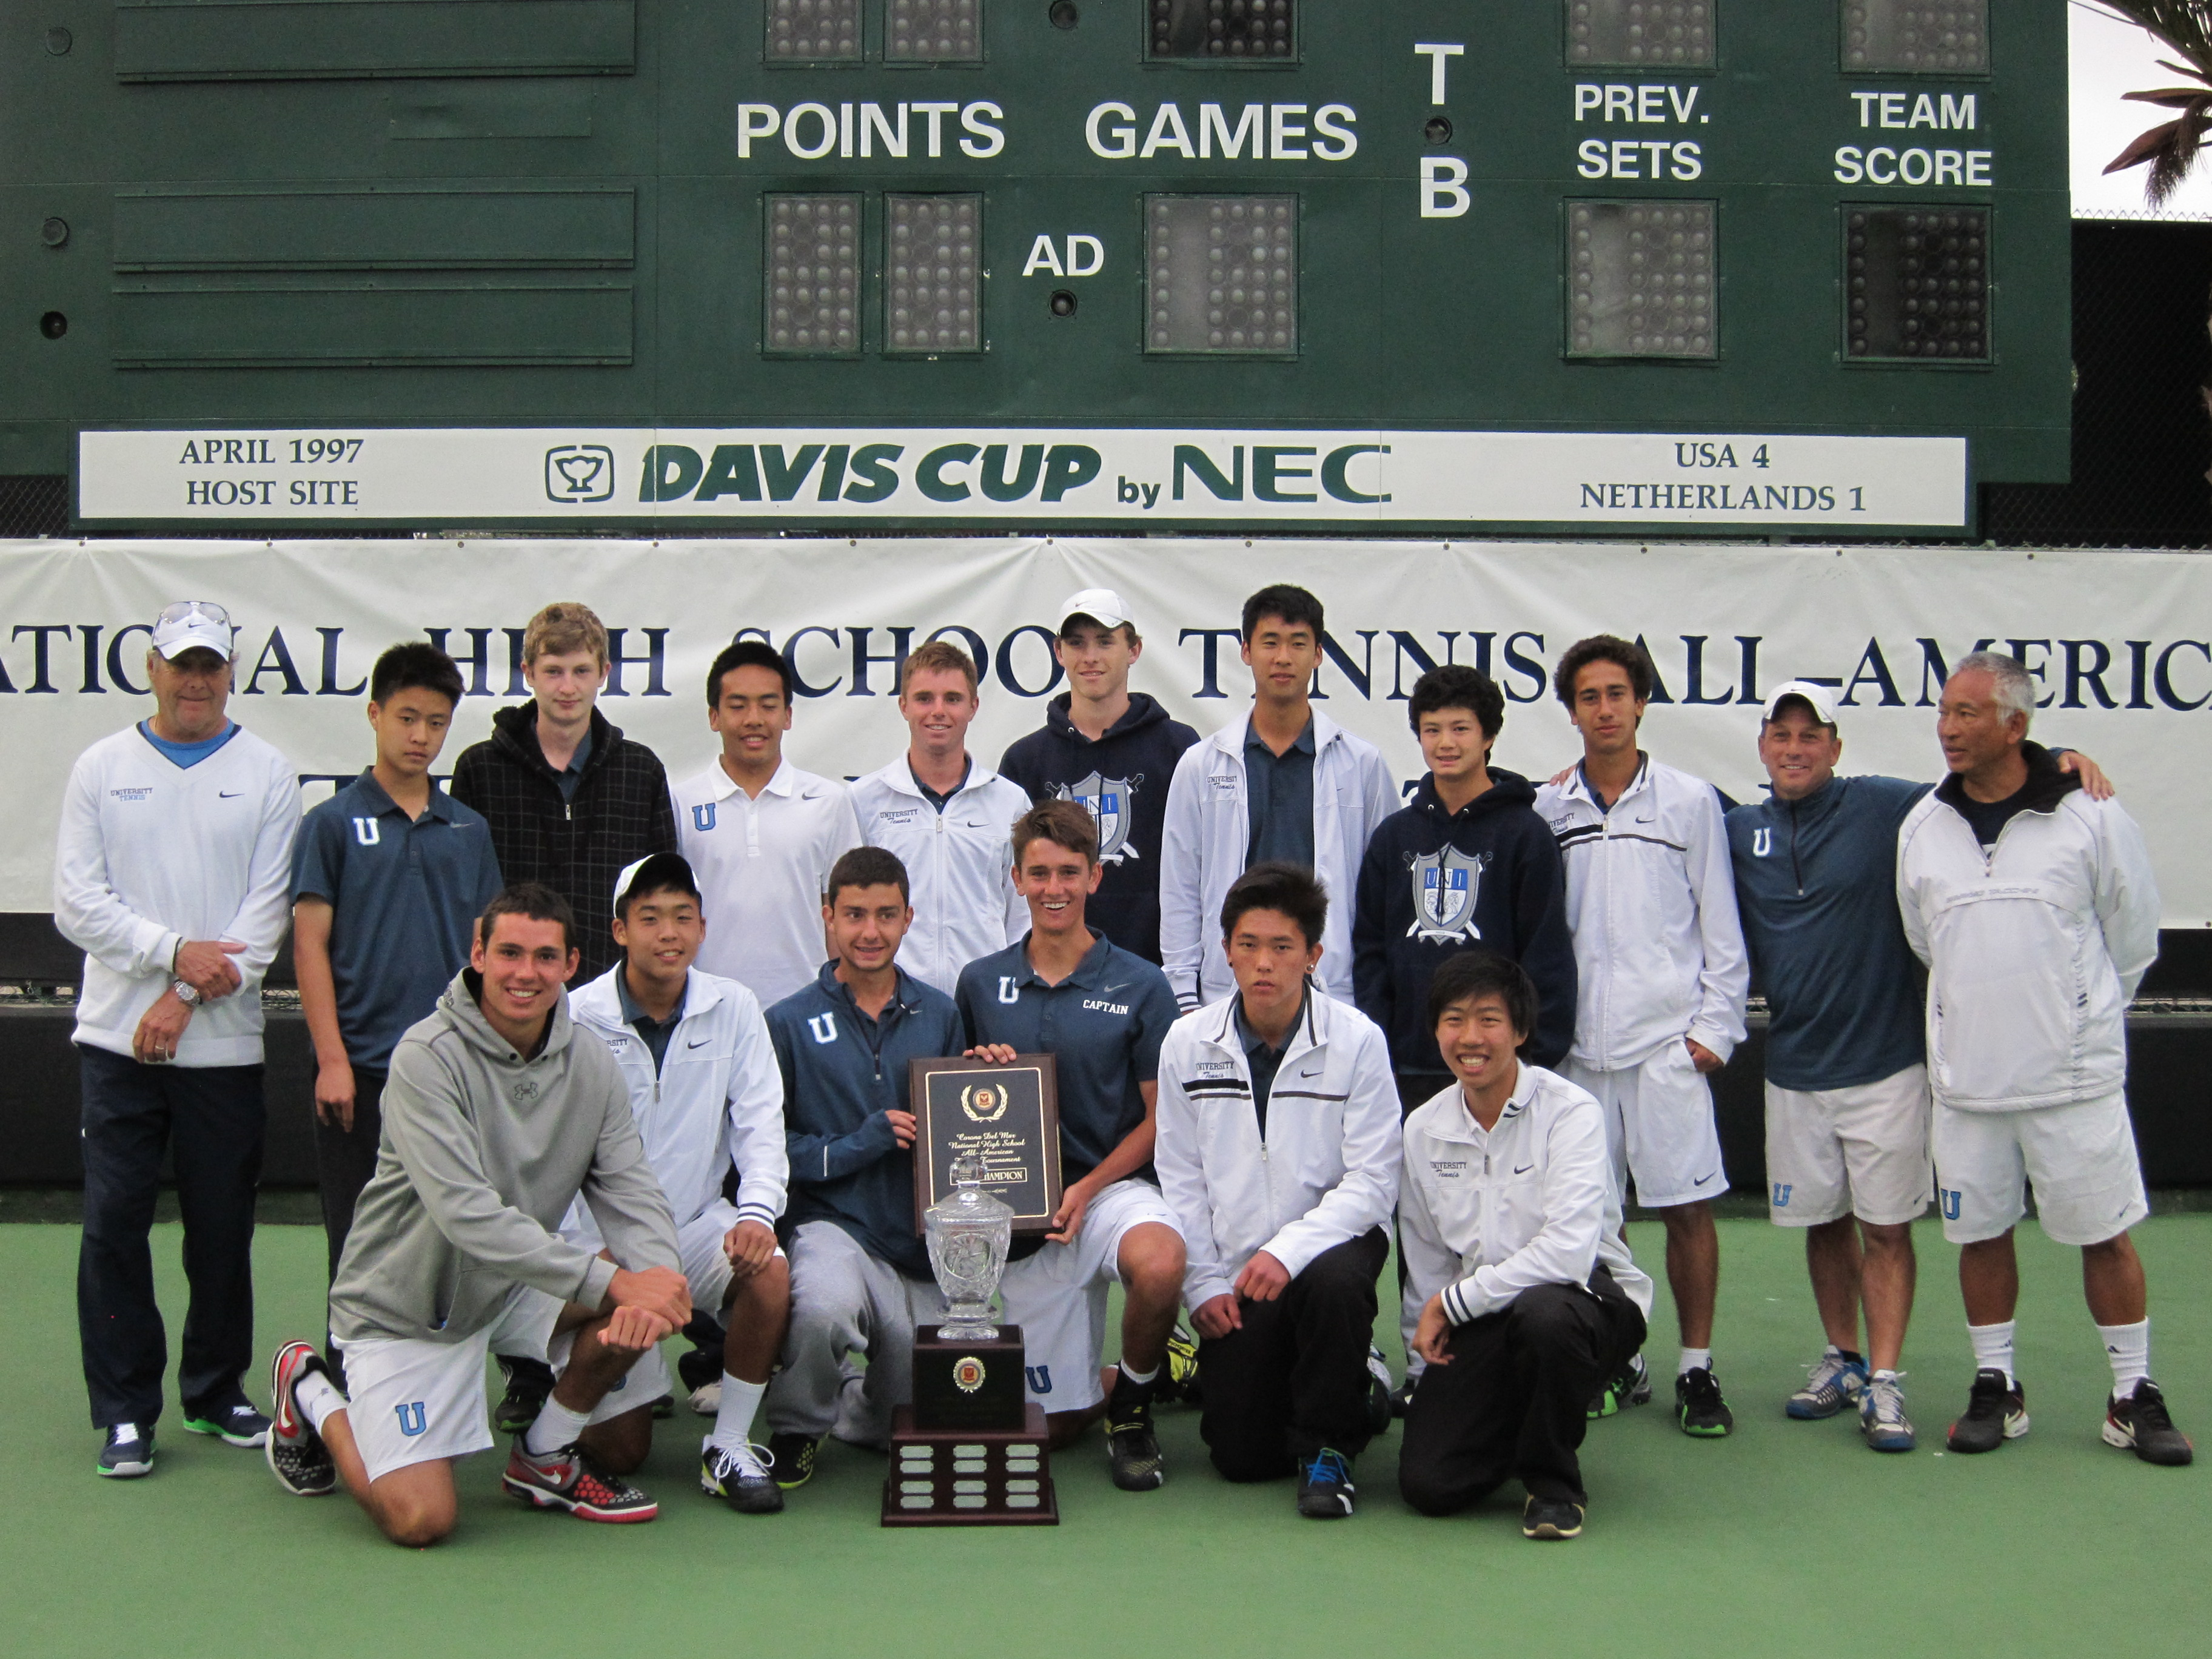 UNI Tennis Team Boys University High School Tennis Team Won All American Team Invitational